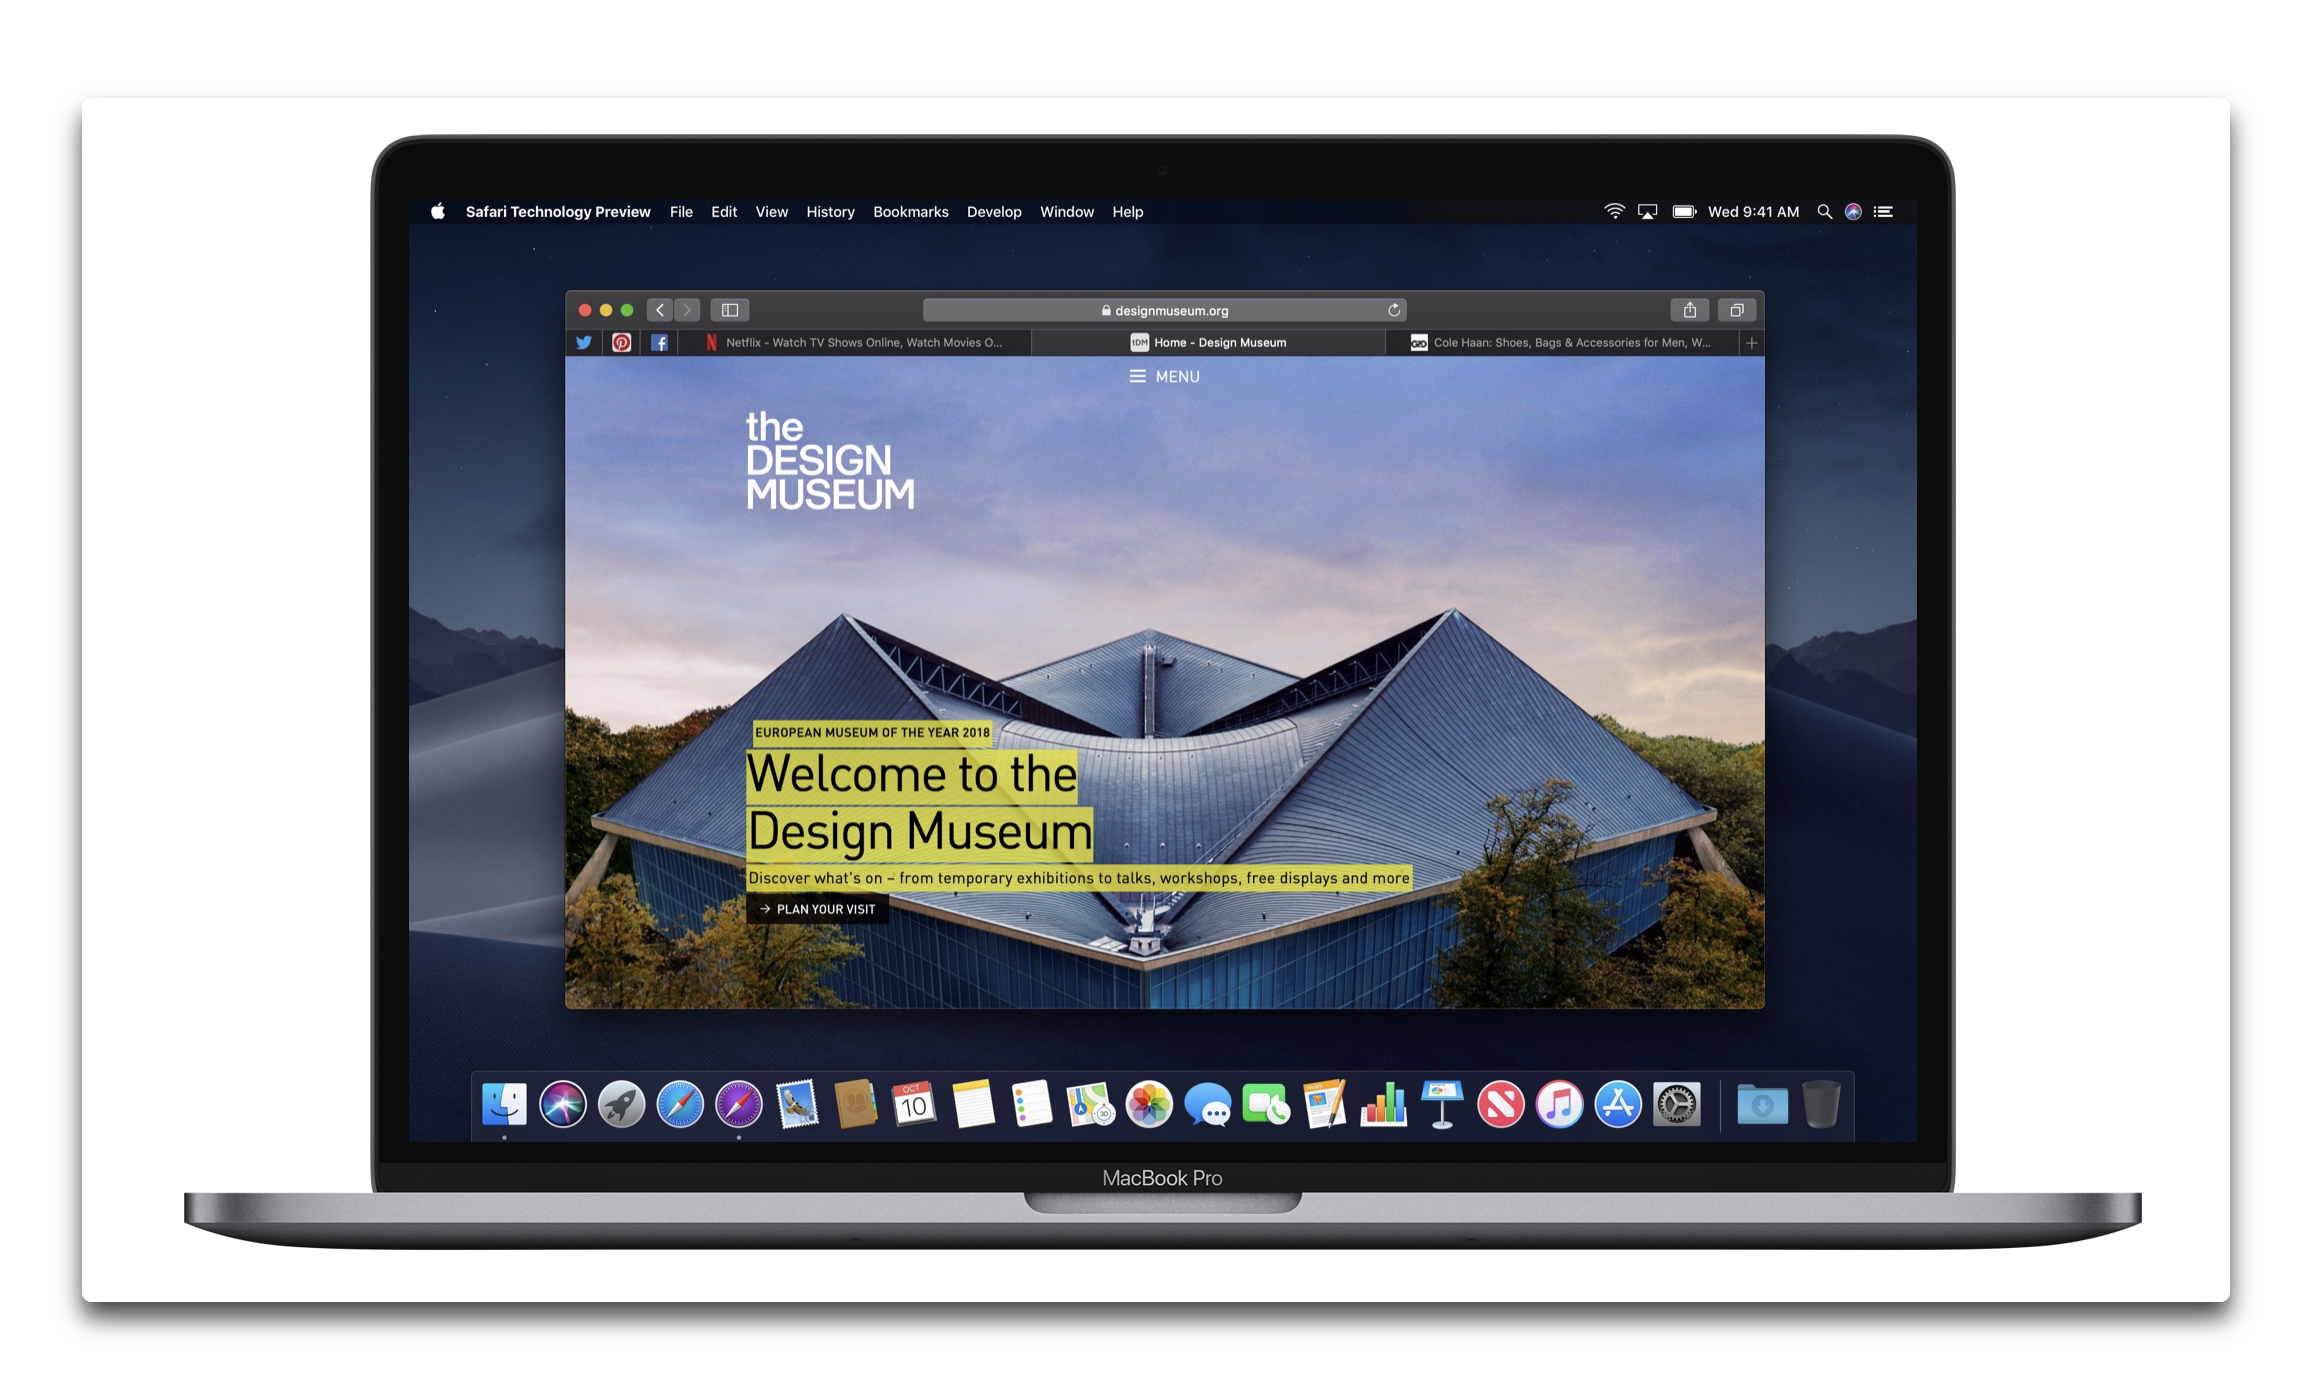 【Mac】Apple,「Safari Technology Preview Release 80」を開発者にリリース